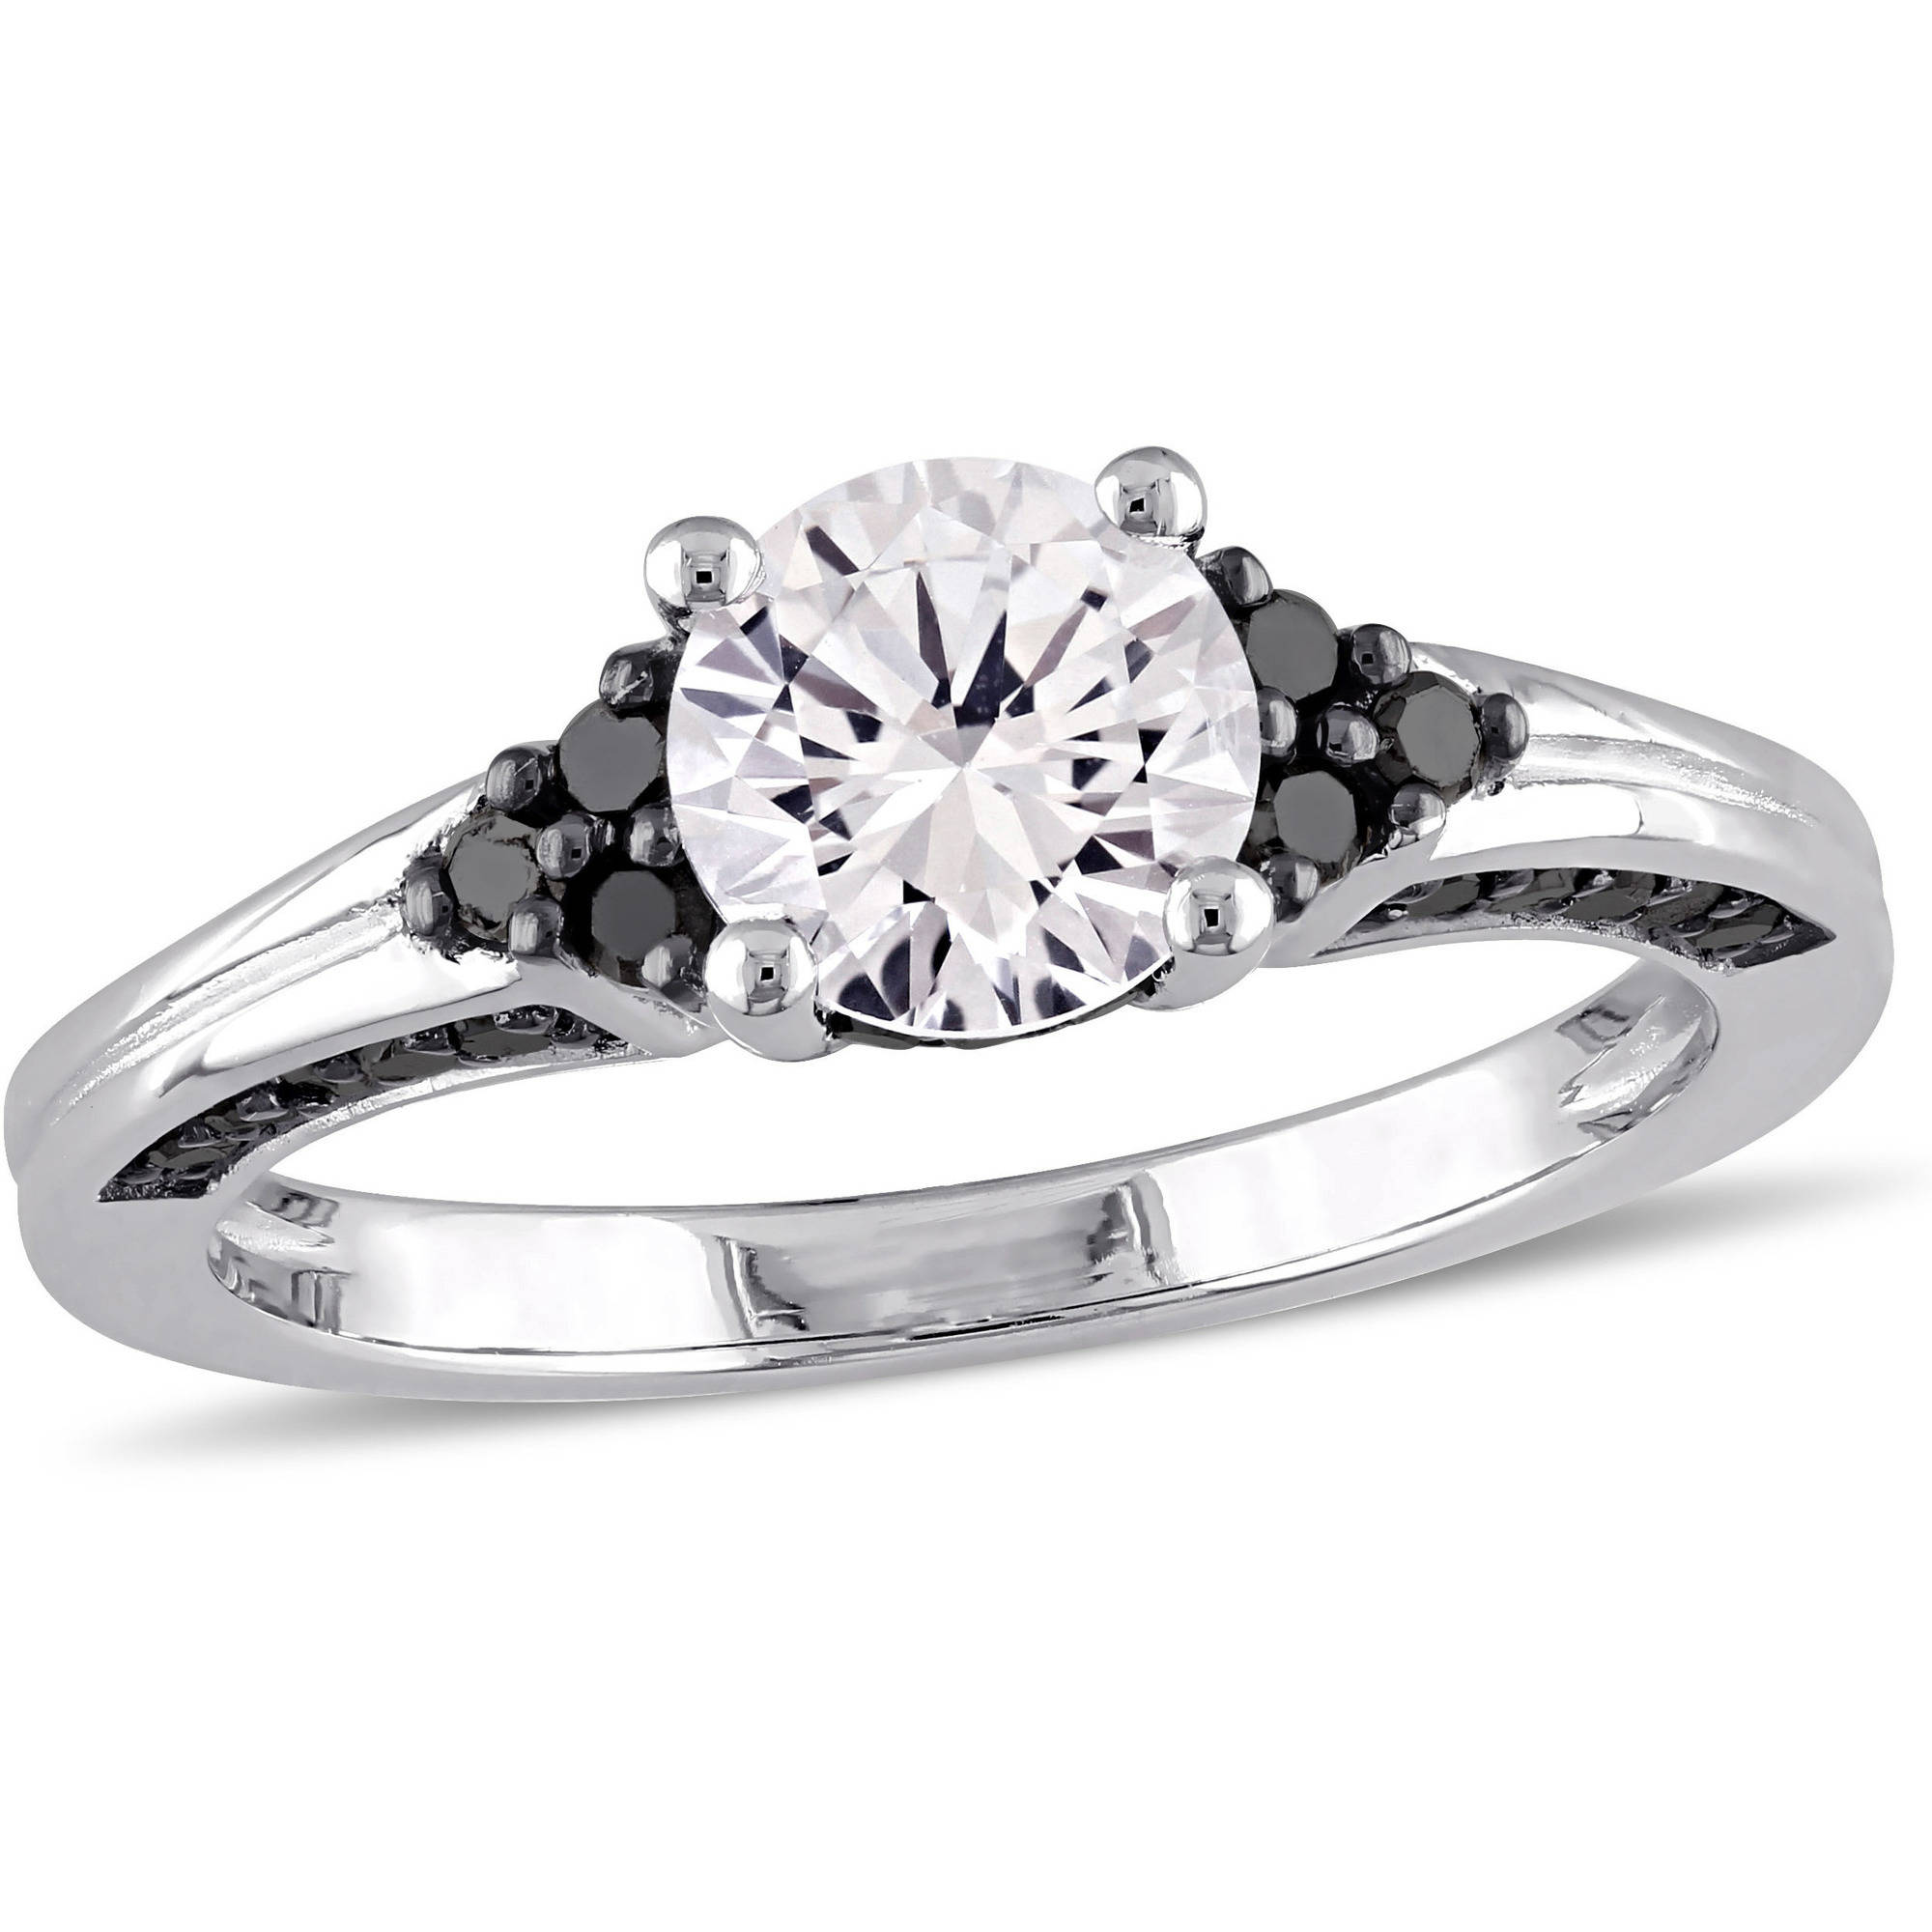 1-3/8 Carat T.G.W. Created White Sapphire and 3/8 Carat T.W. Black Diamond Sterling Silver Engagement Ring